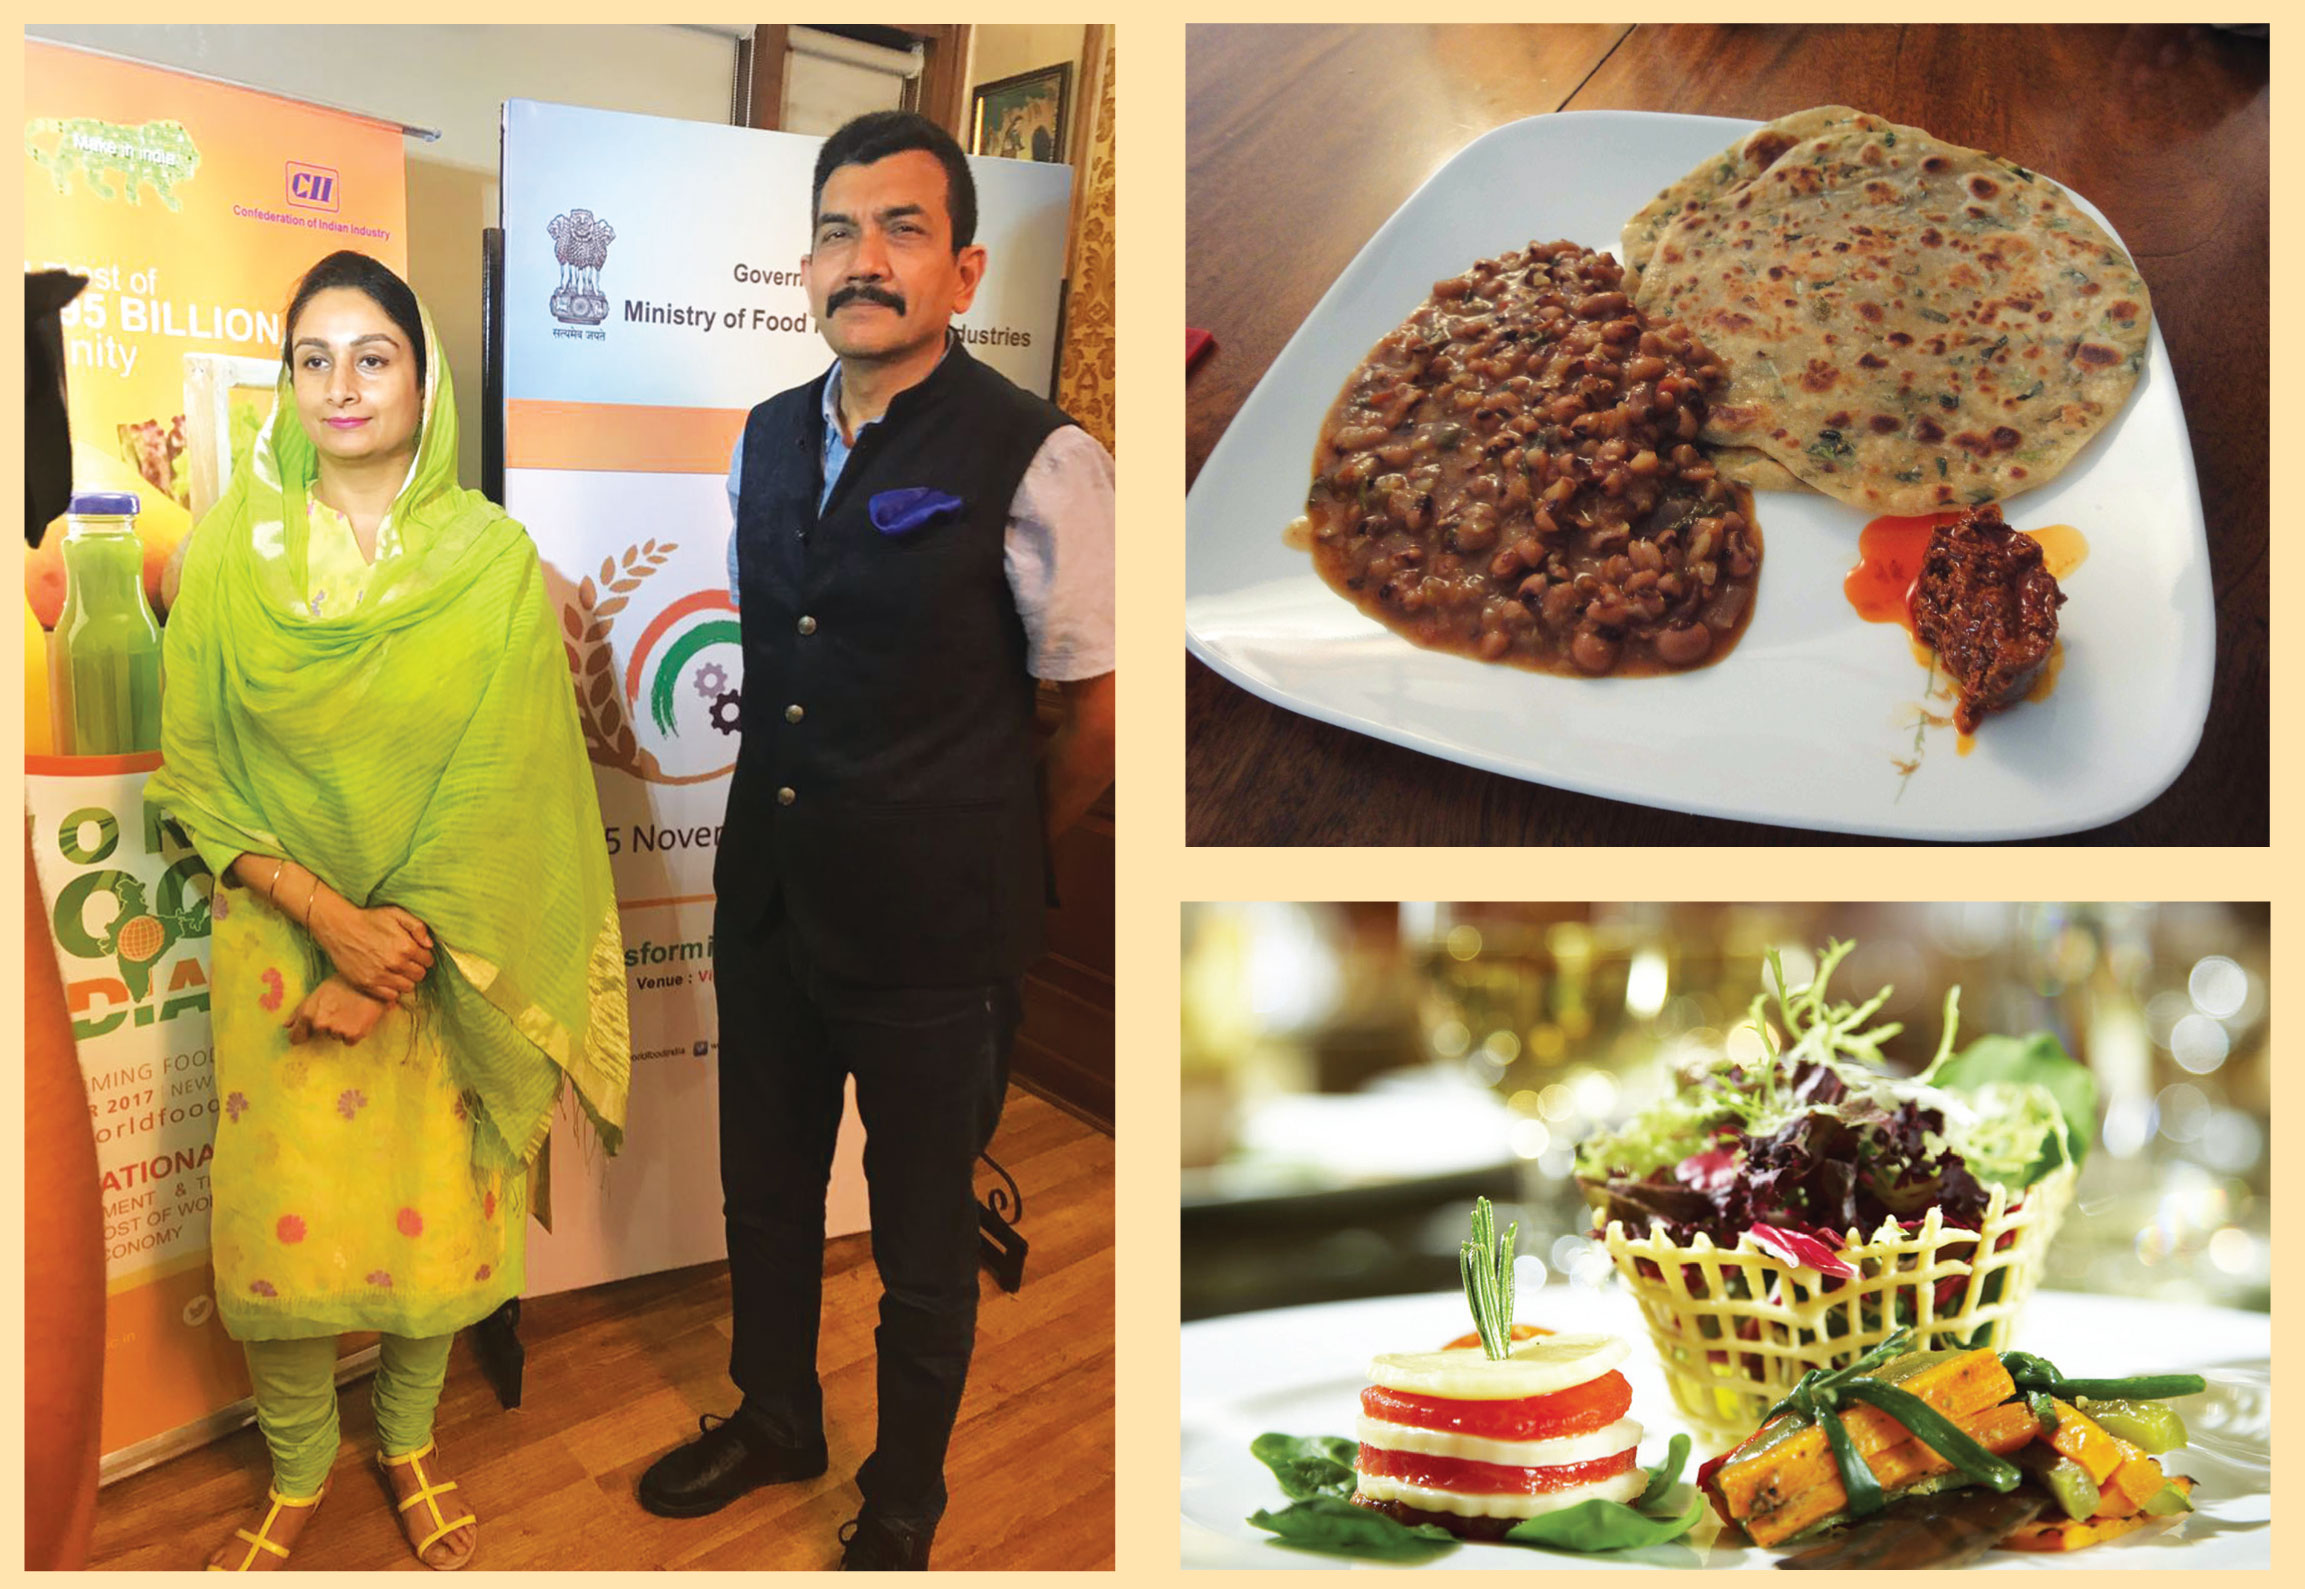 Hospitality biz india chef sanjeev kapoor celebrity chef q what do you think we need to do to make indian food appealing to the world generally chefs do some customisation when they introduce food to a new forumfinder Gallery